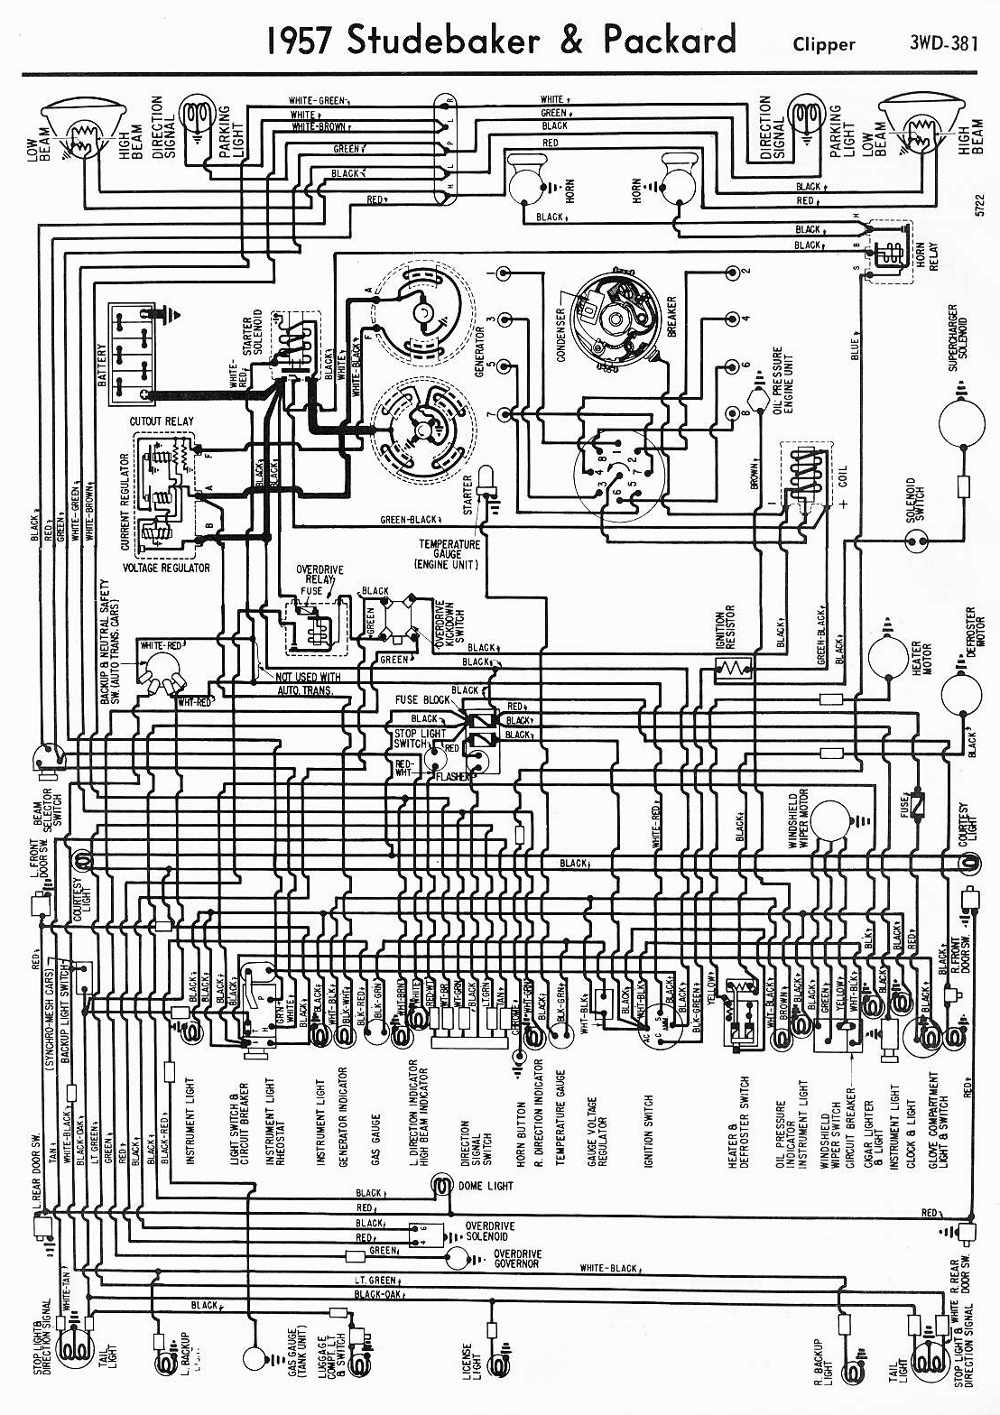 1957 studebaker and packard clipper wiring diagram